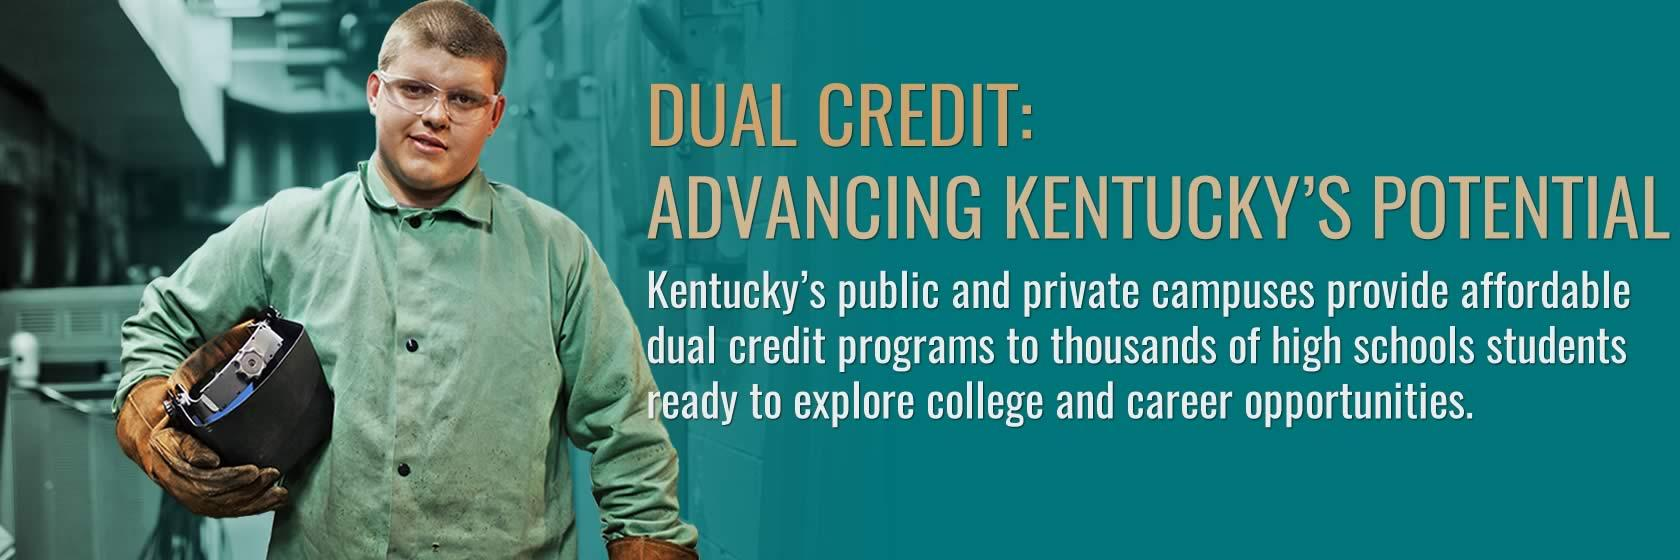 Learn more about Kentucky's dual credit programs.